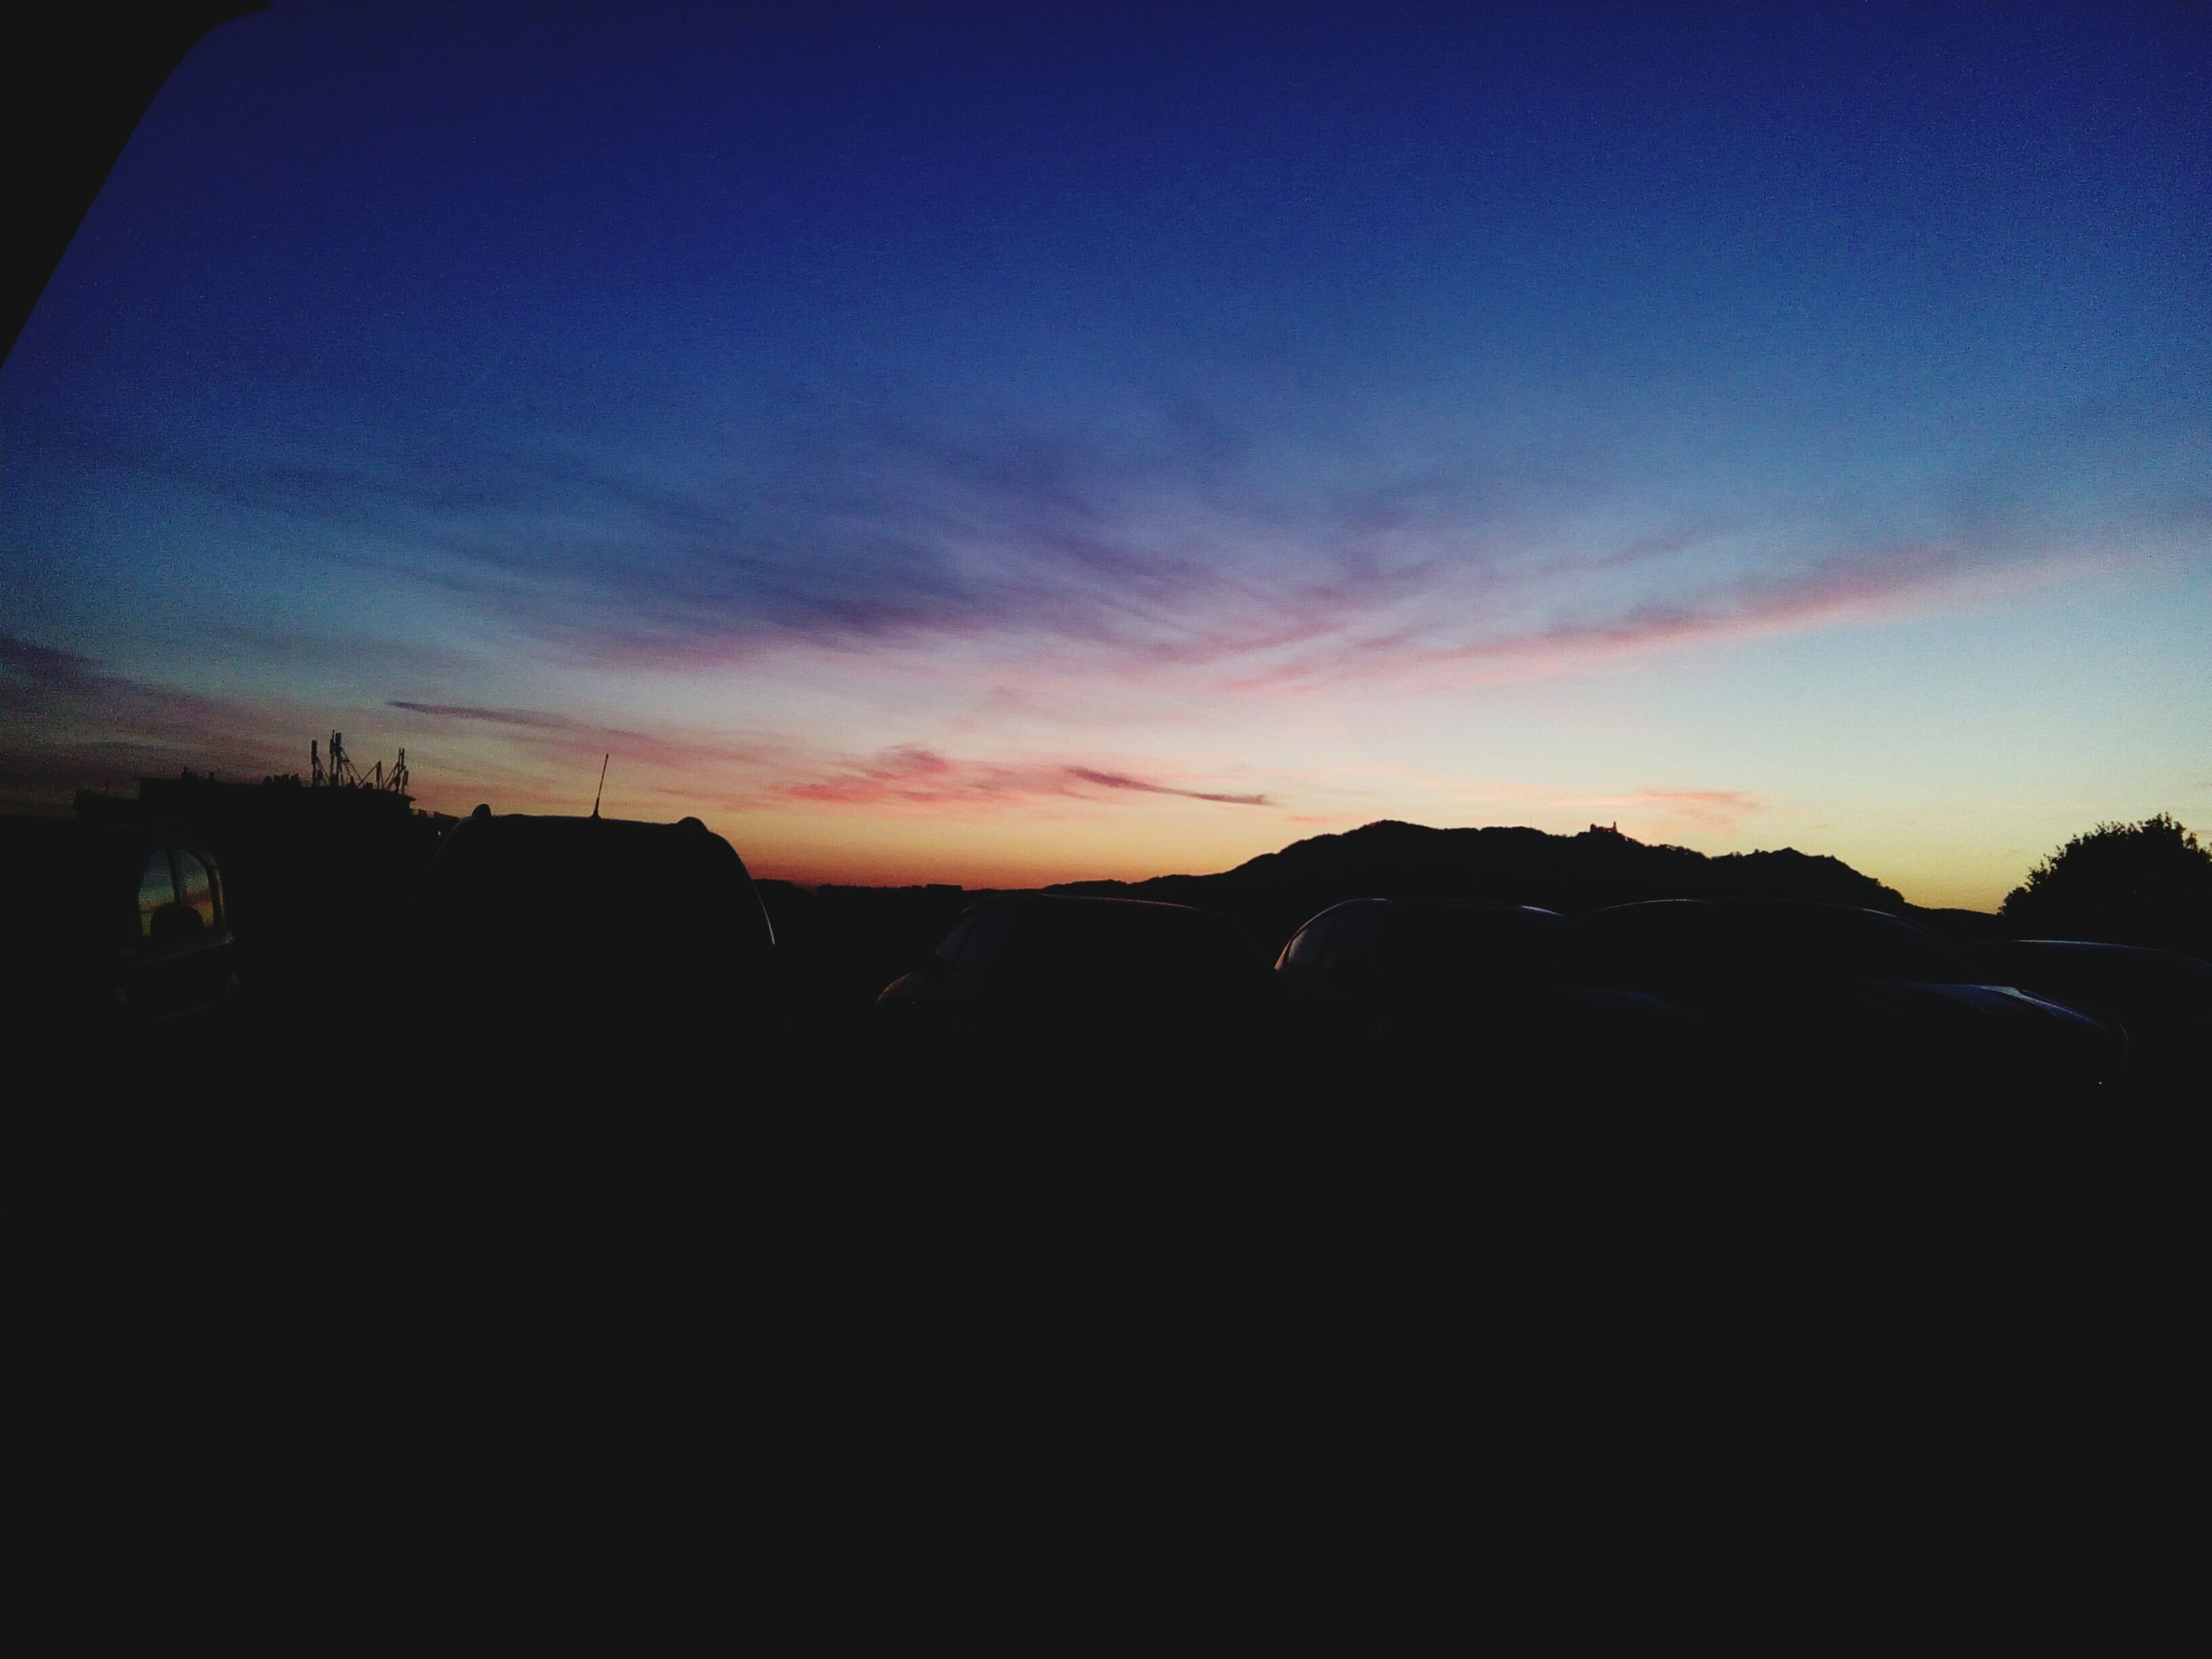 sunset, sky, silhouette, nature, beauty in nature, no people, outdoors, night